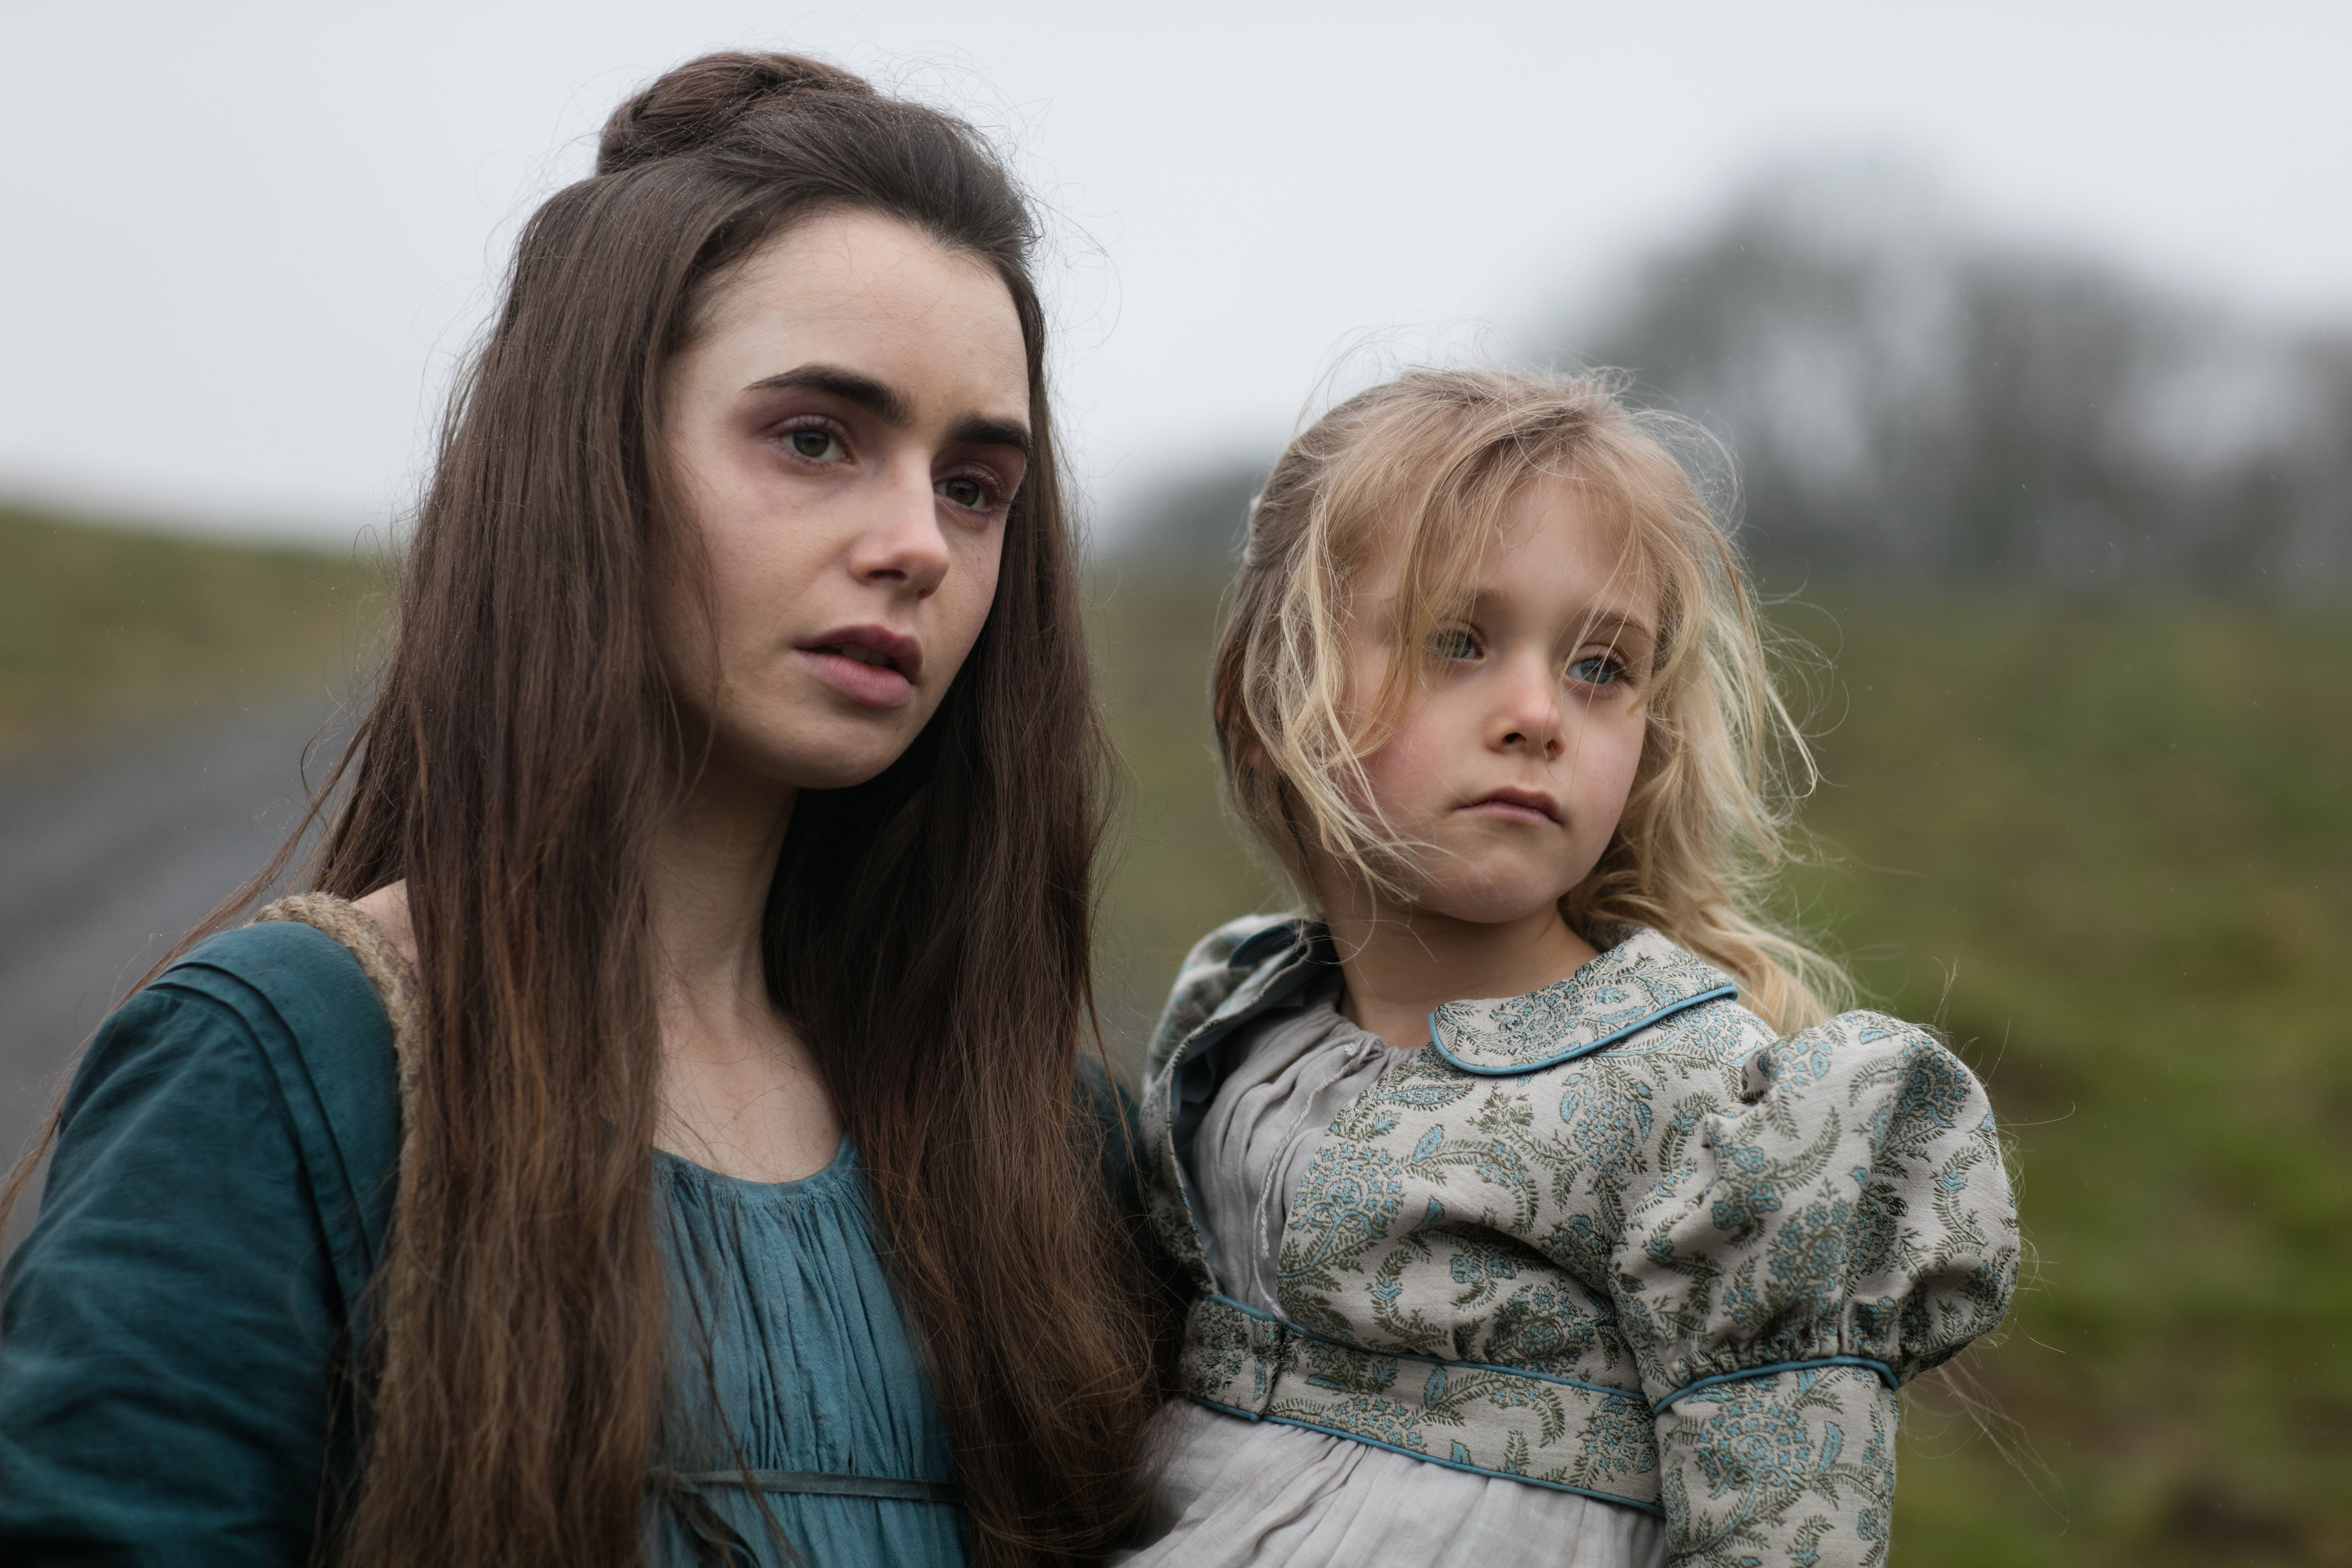 Lily Collins as Fantine in Les Misérables, holding her daughter Cosette.